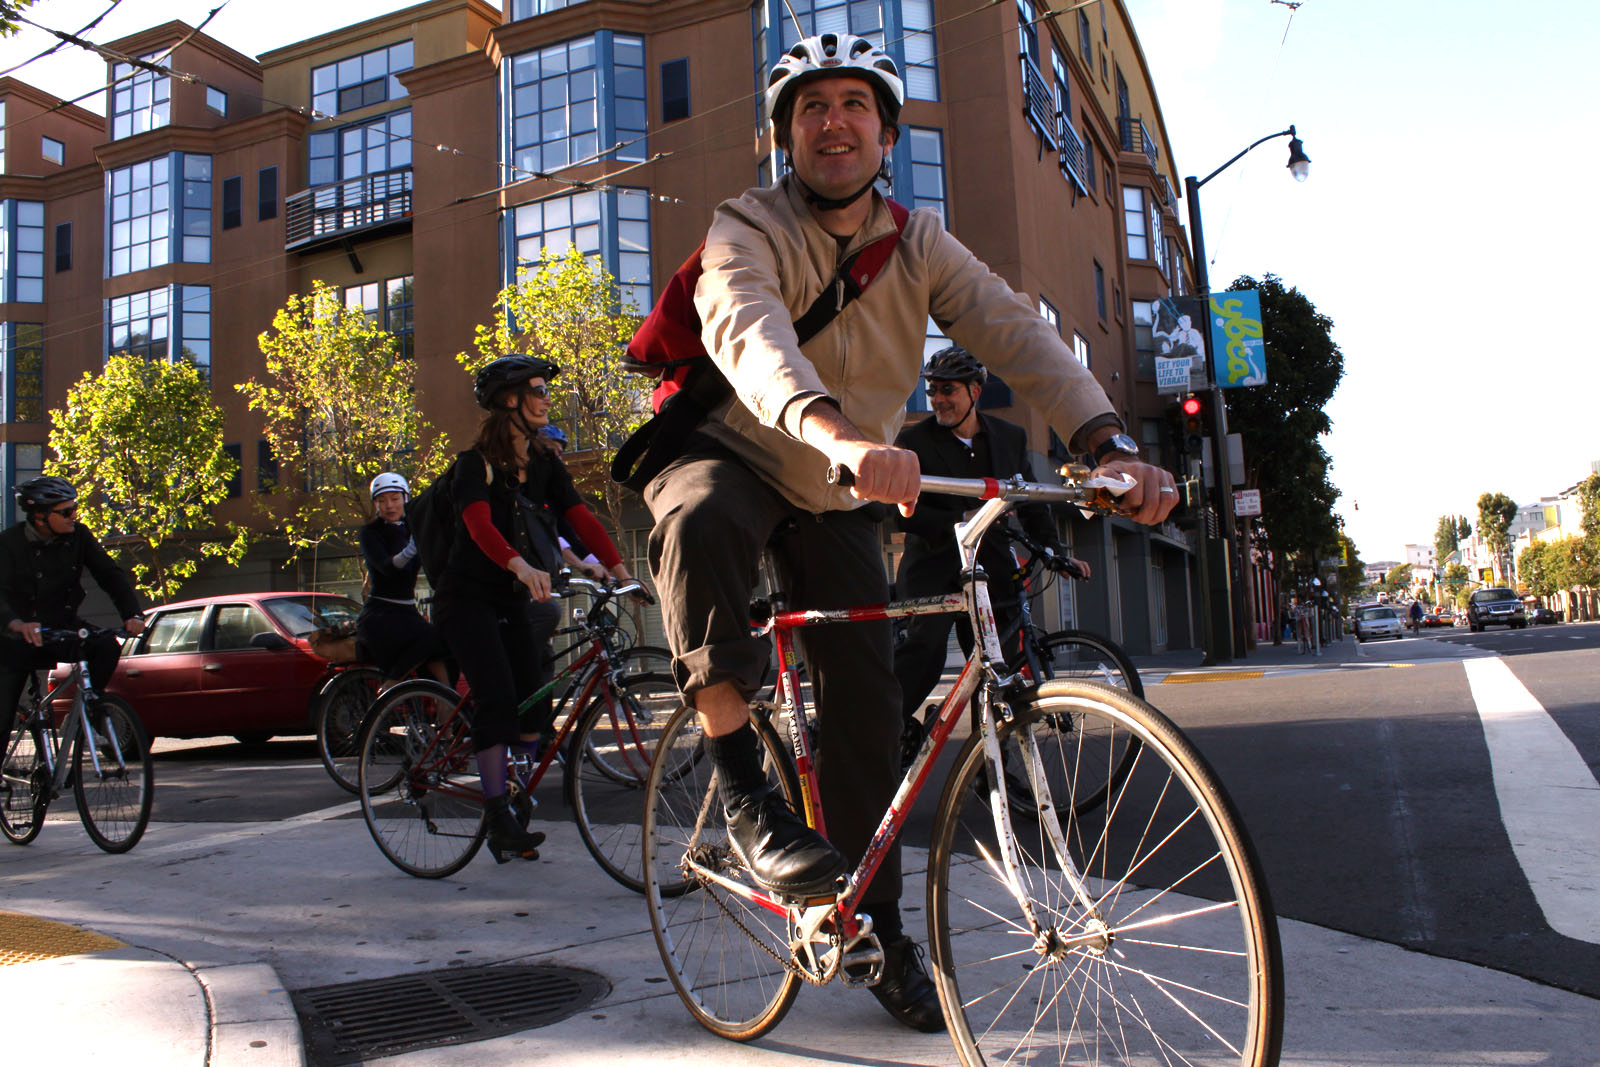 Listen Local: It's Bike to Work Day in San Francisco